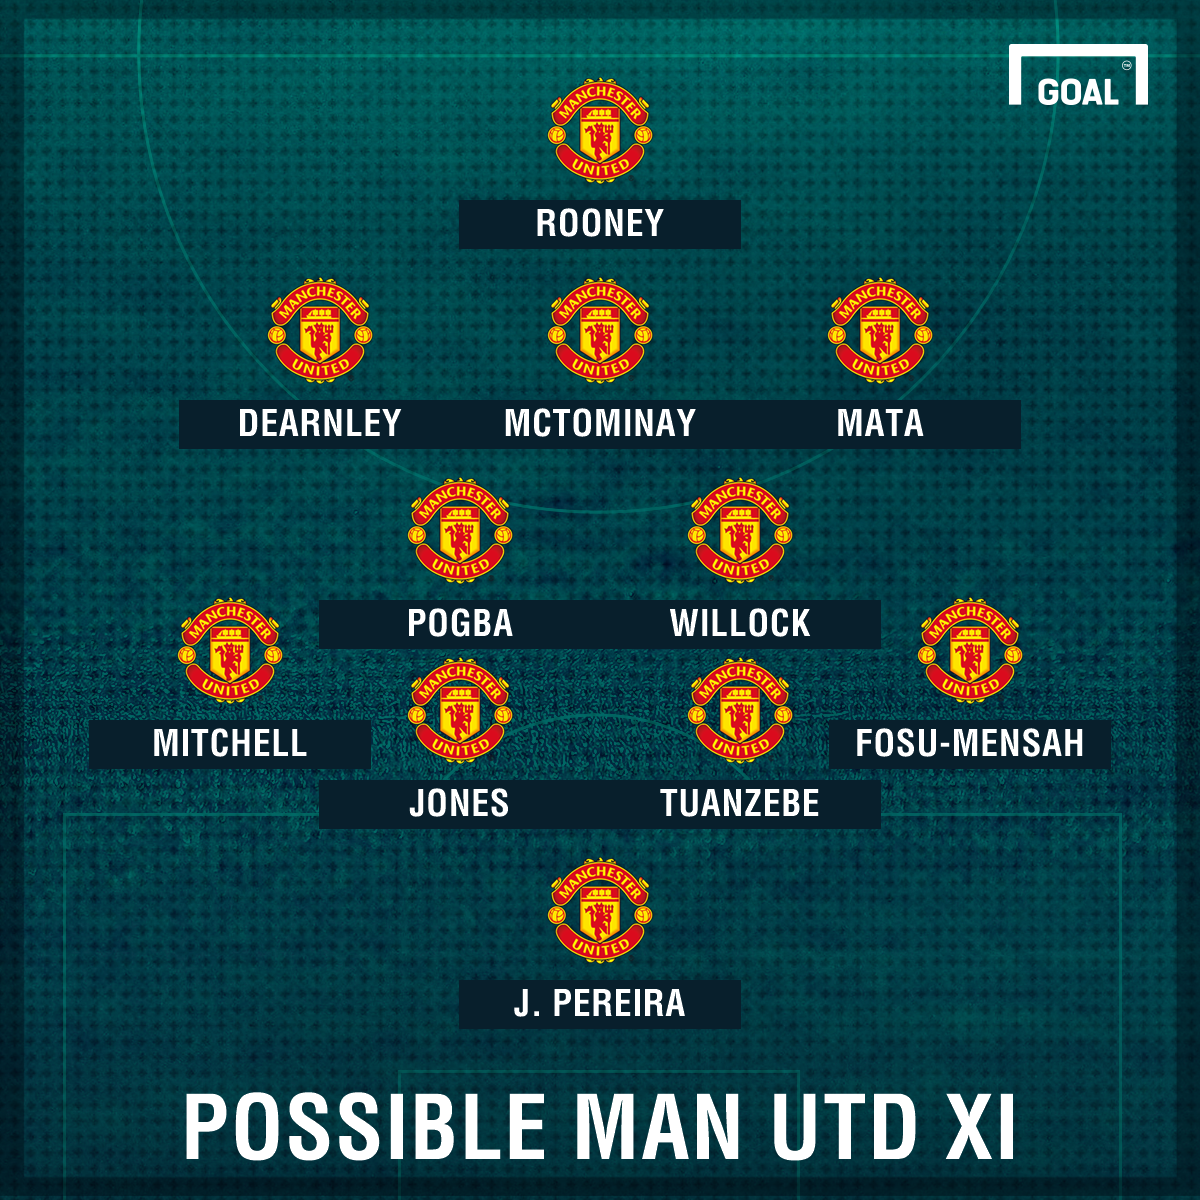 Possible Man Utd XI for Palace